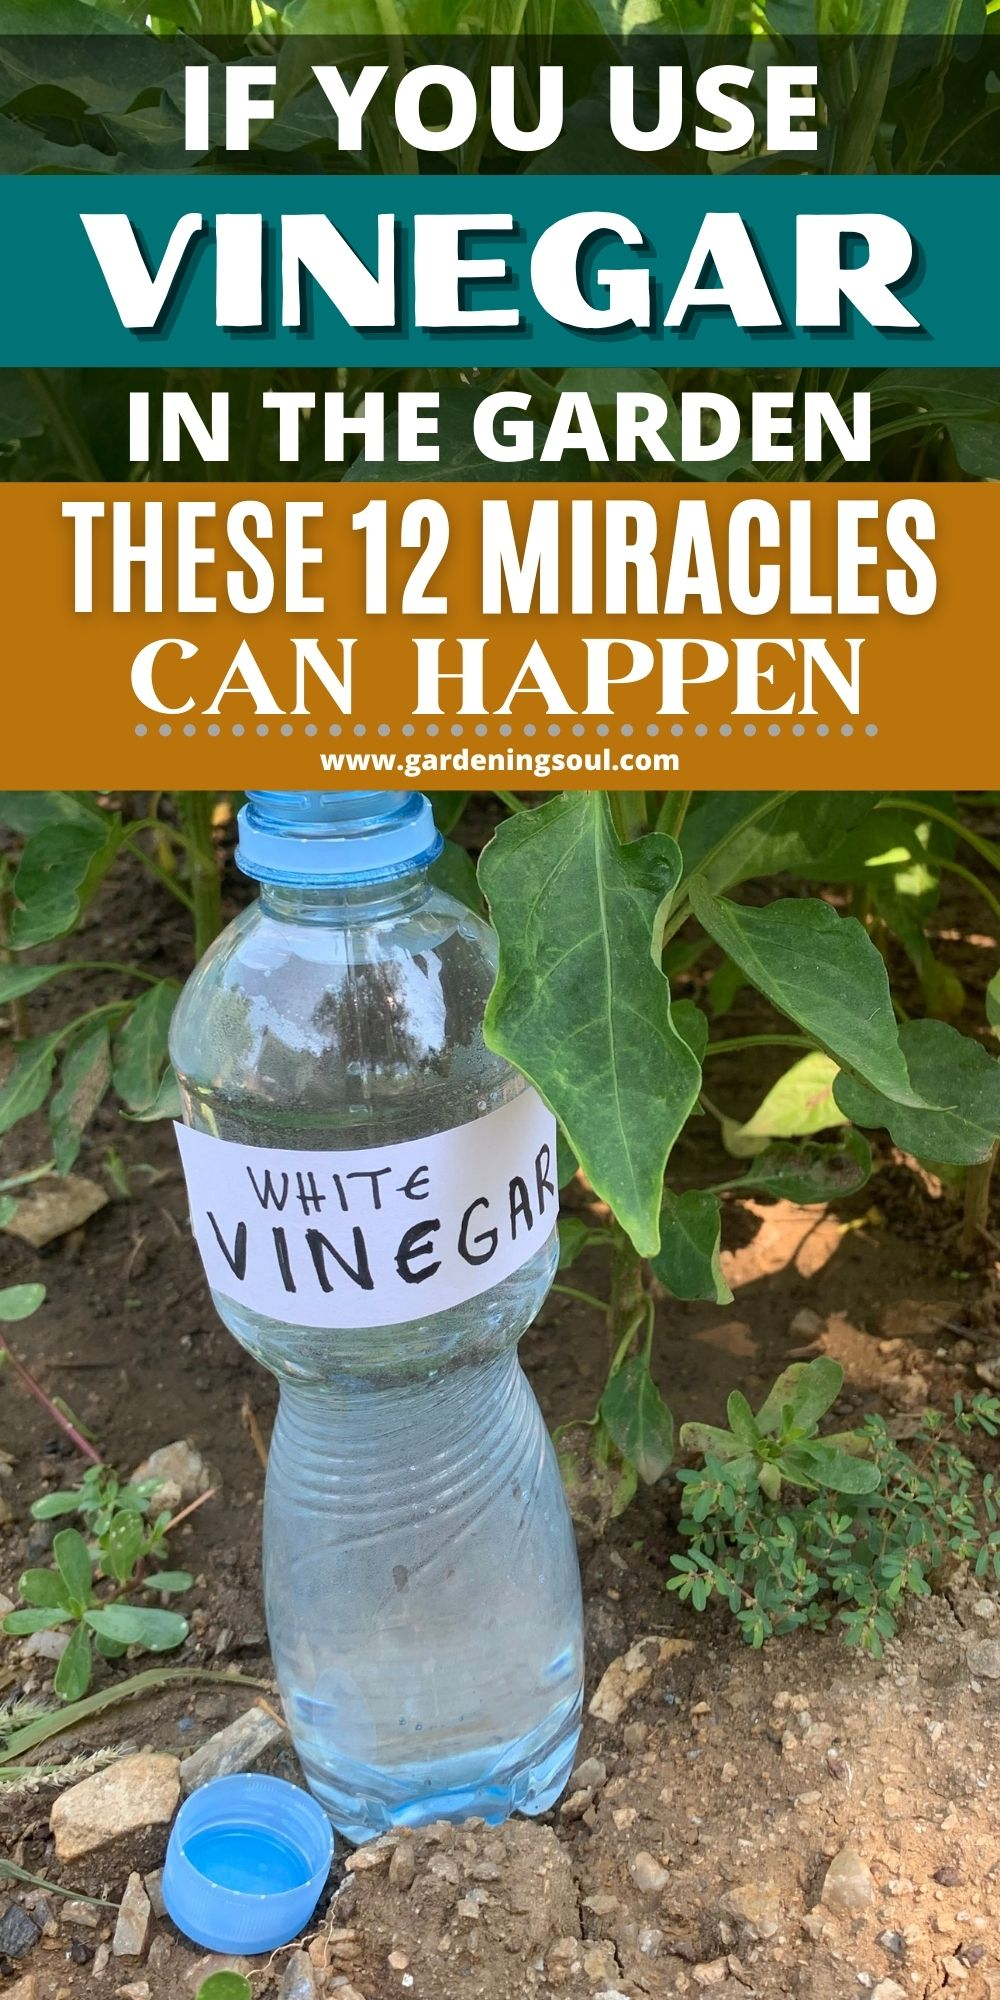 If You Use Vinegar in the Garden These 12 Miracles